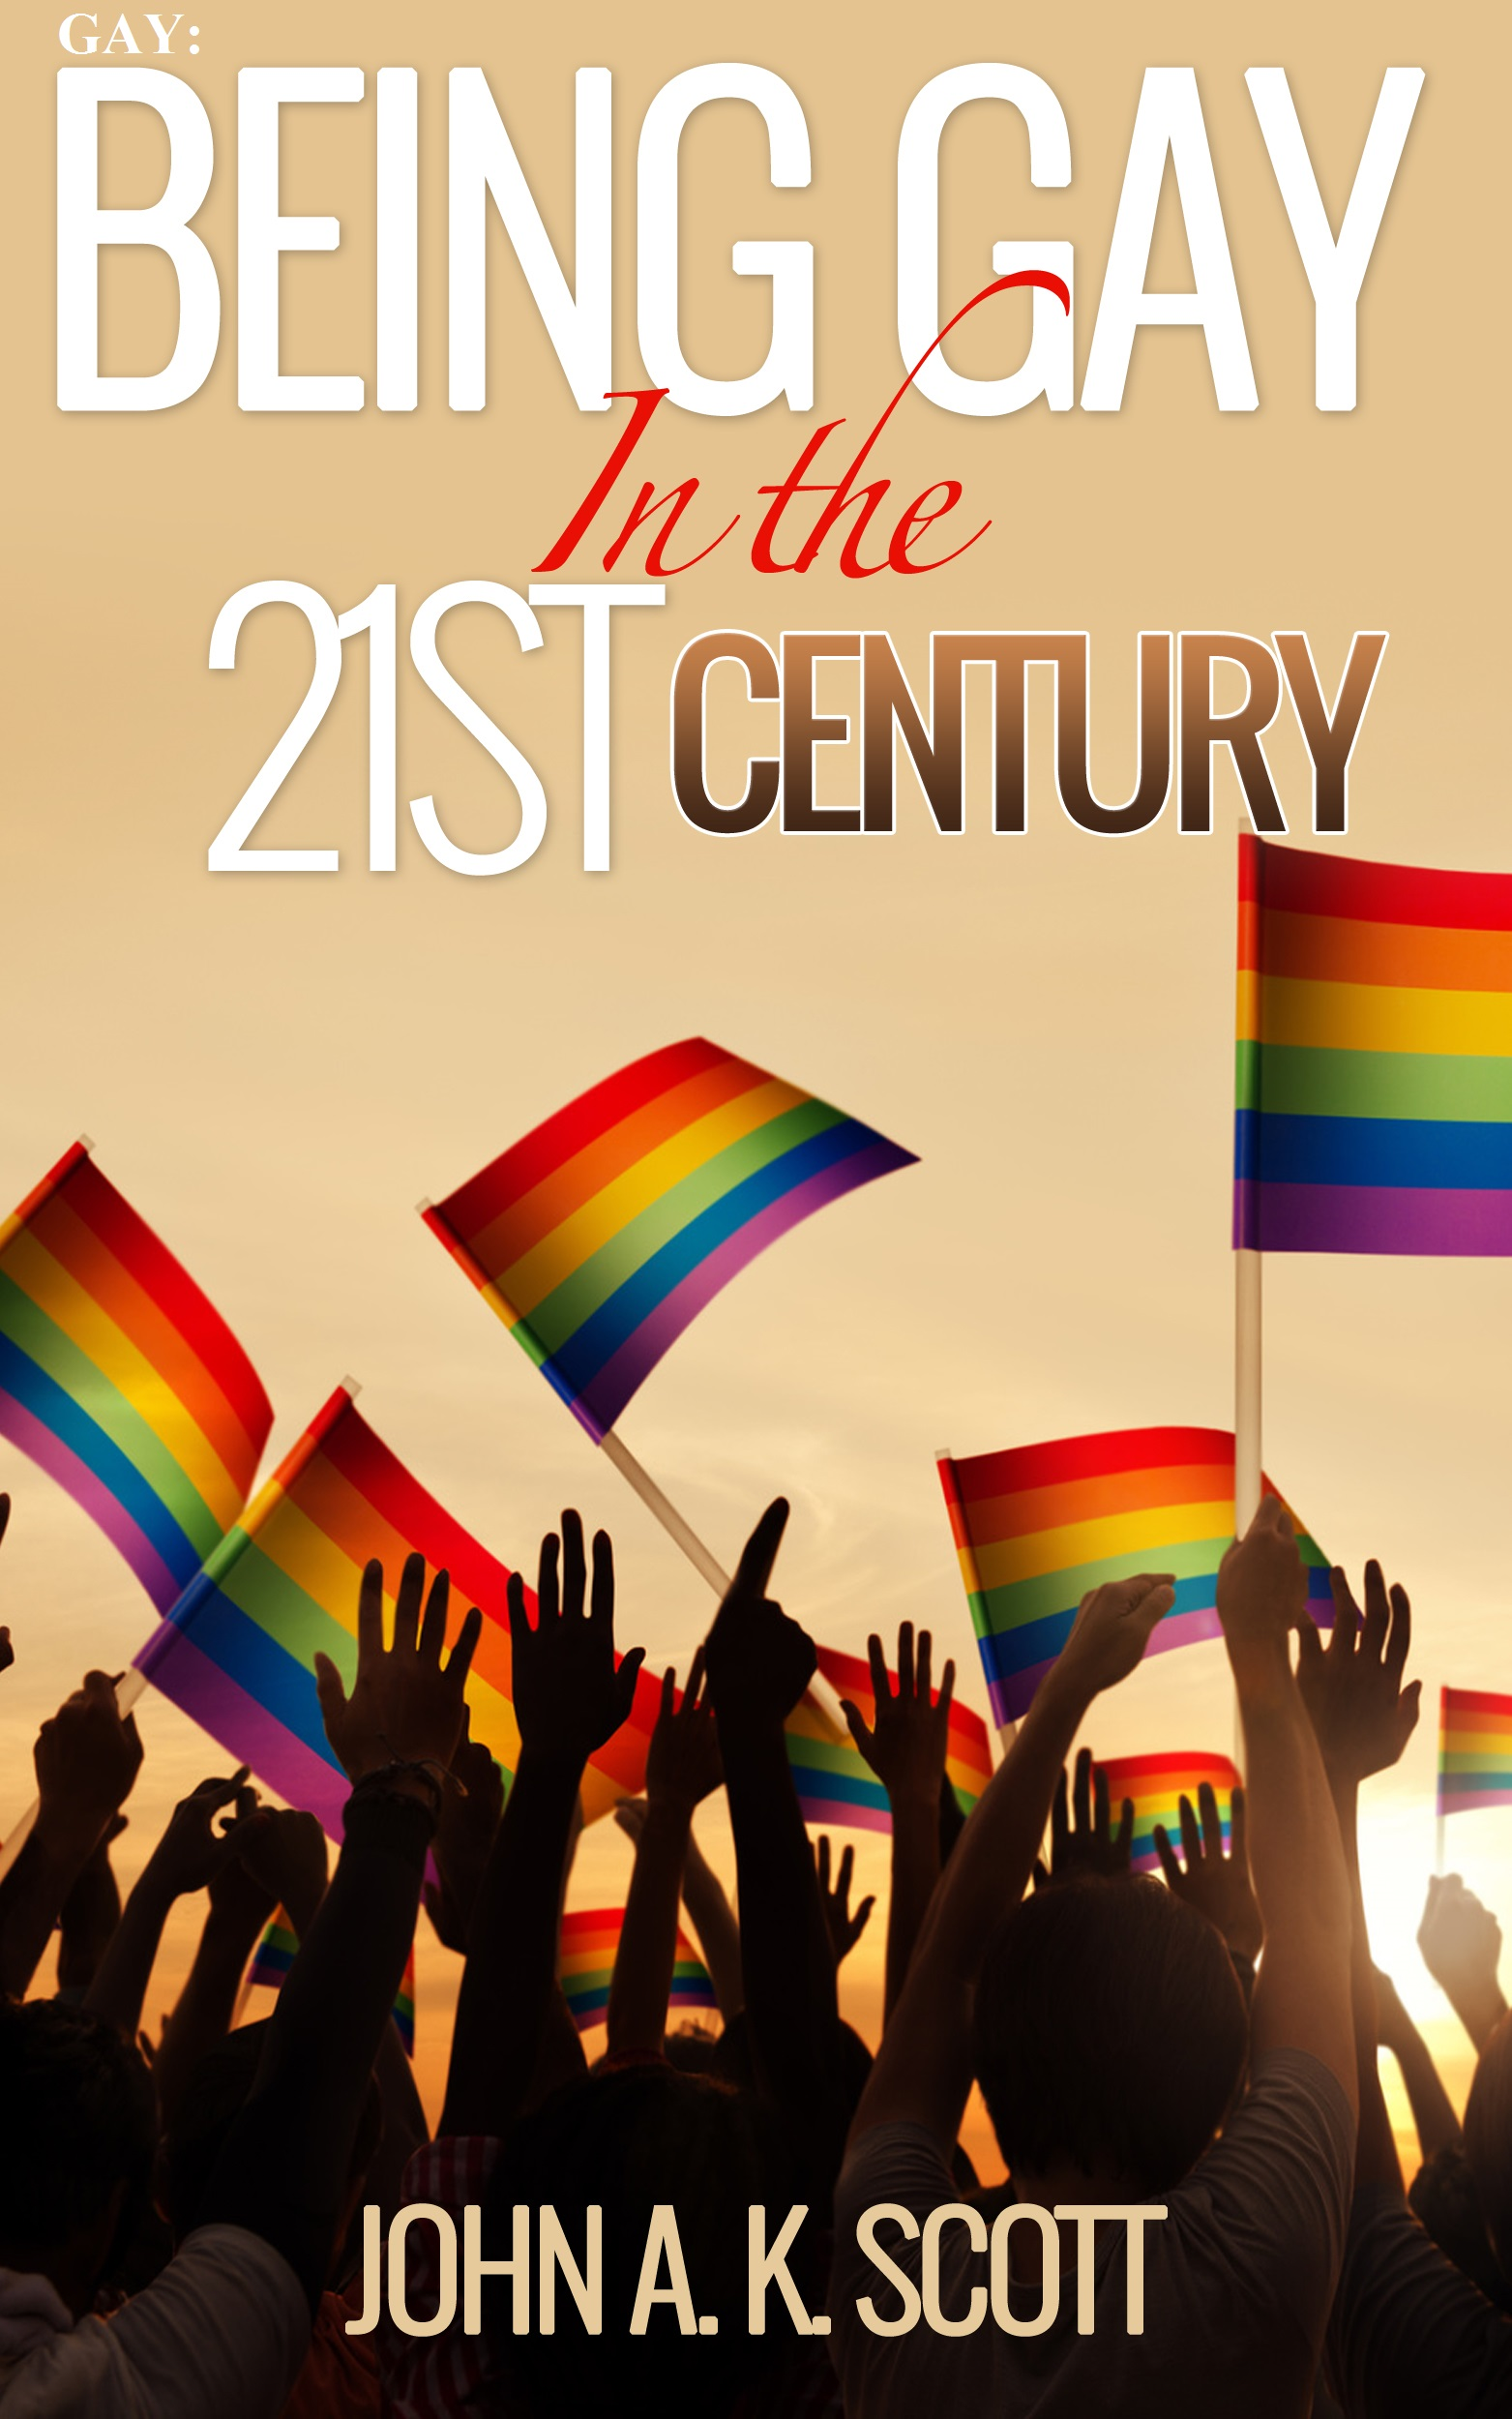 Gay: being gay in the 21st century